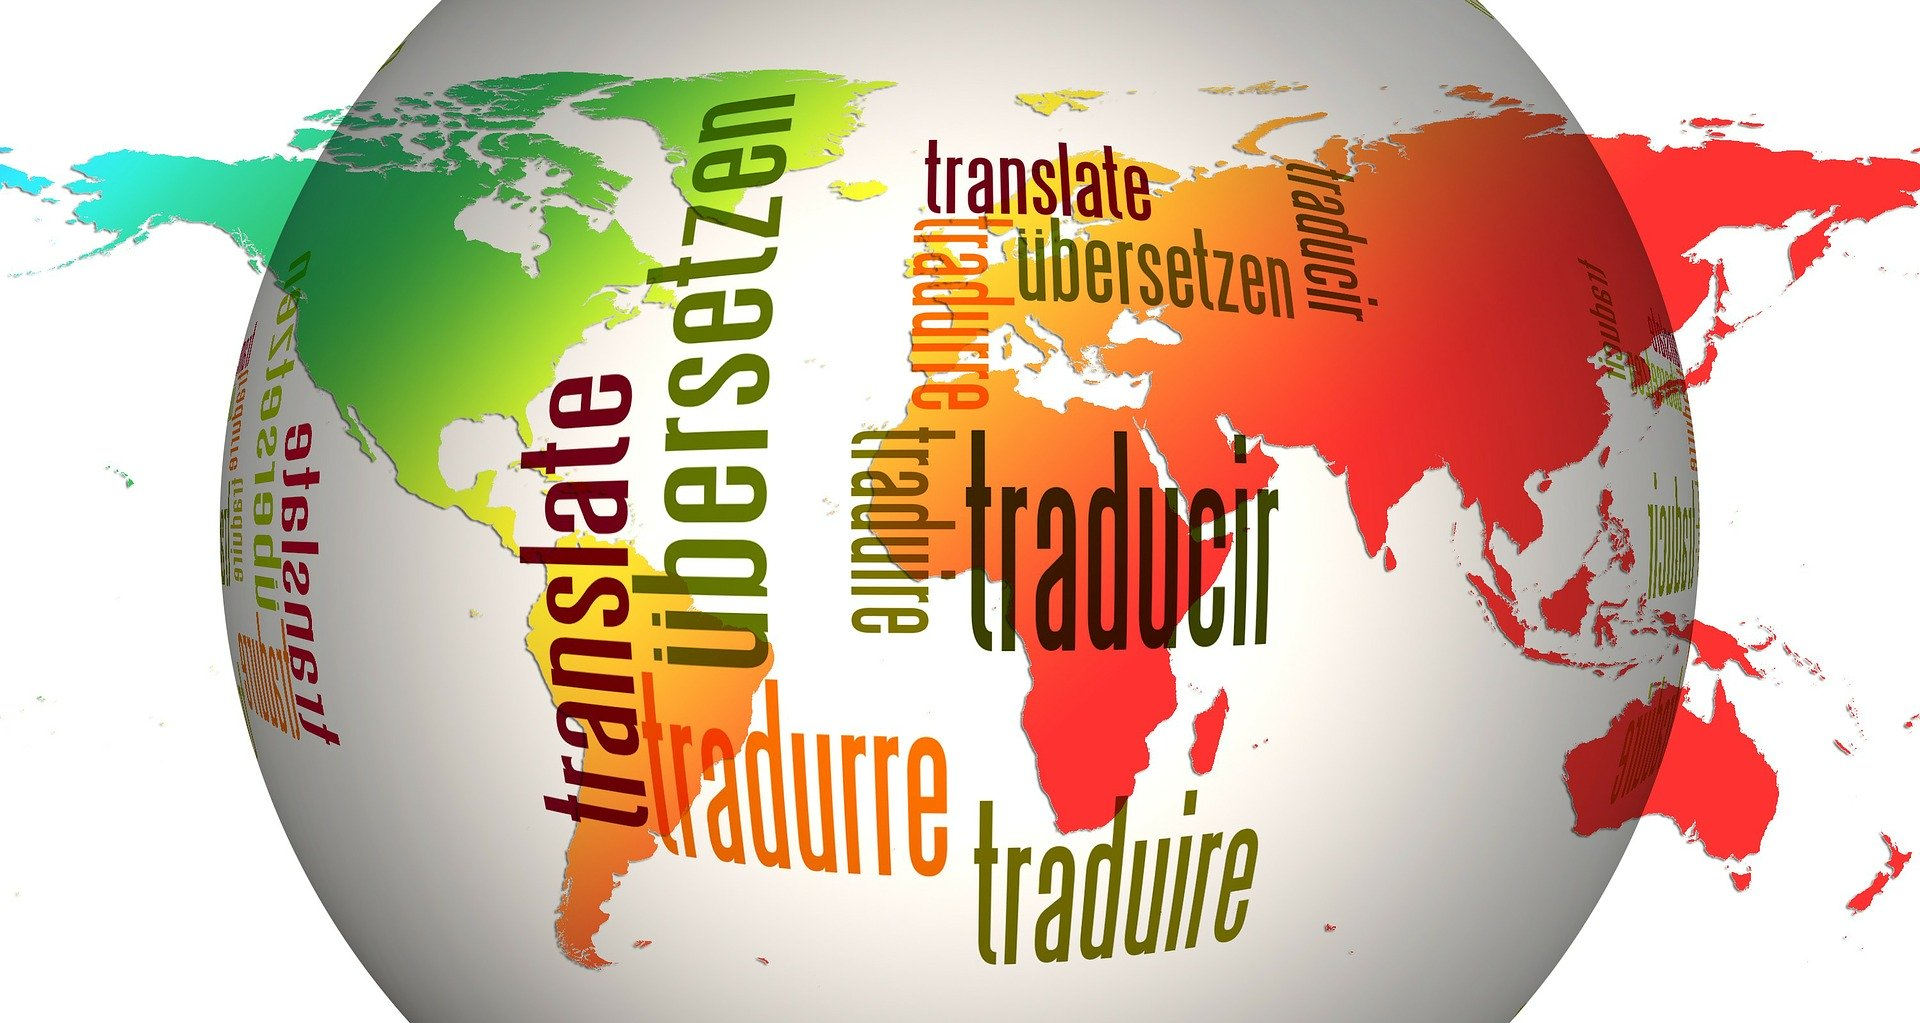 I will translate anything 7 languages - vice versa english, german, french, spanish.